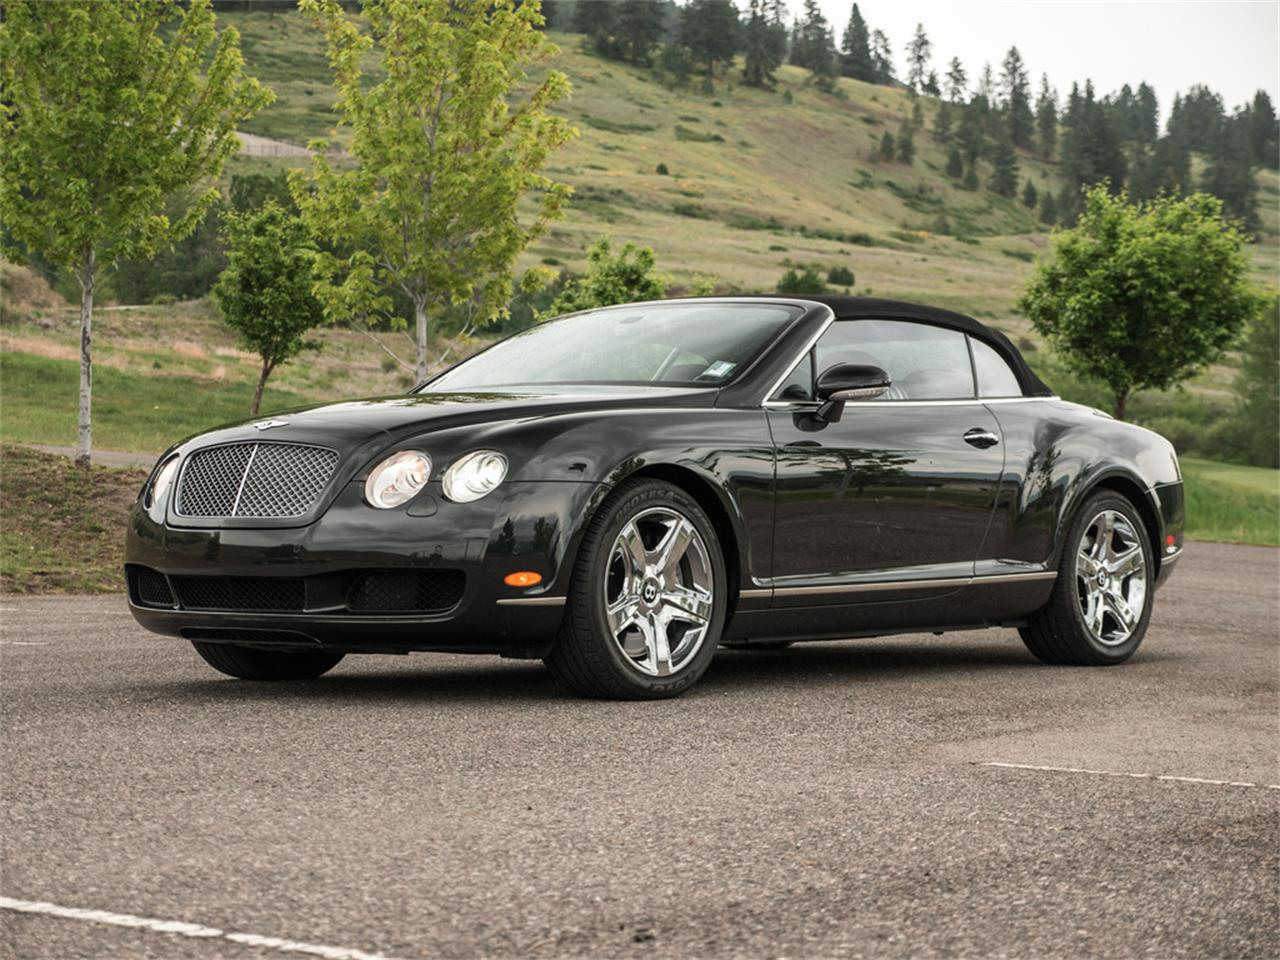 Large Picture of '07 Continental located in British Columbia - $61,210.00 Offered by August Motorcars - Q9QU